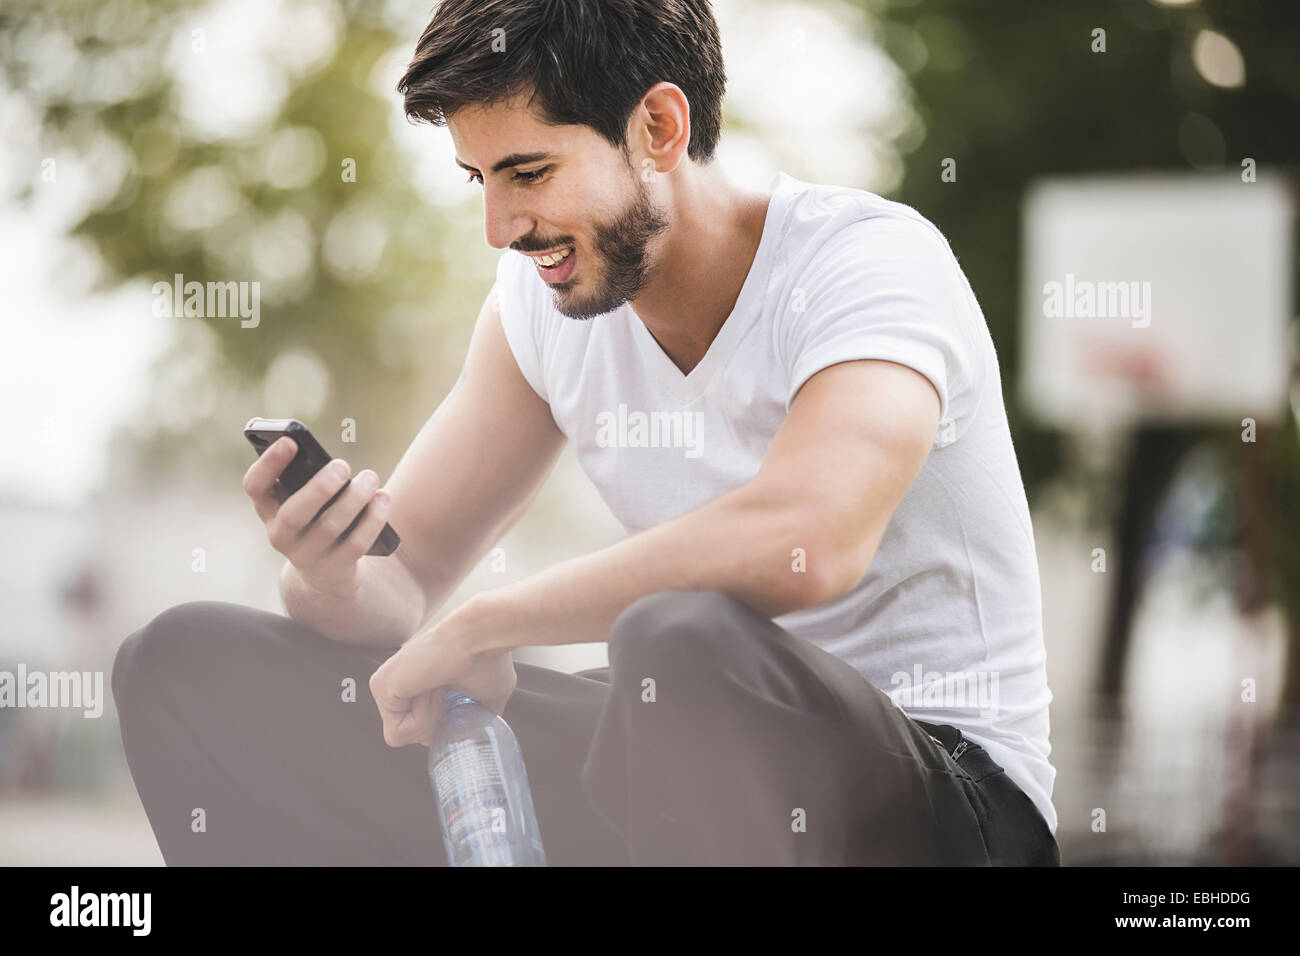 Young male basketball reading texts on smartphone - Stock Image